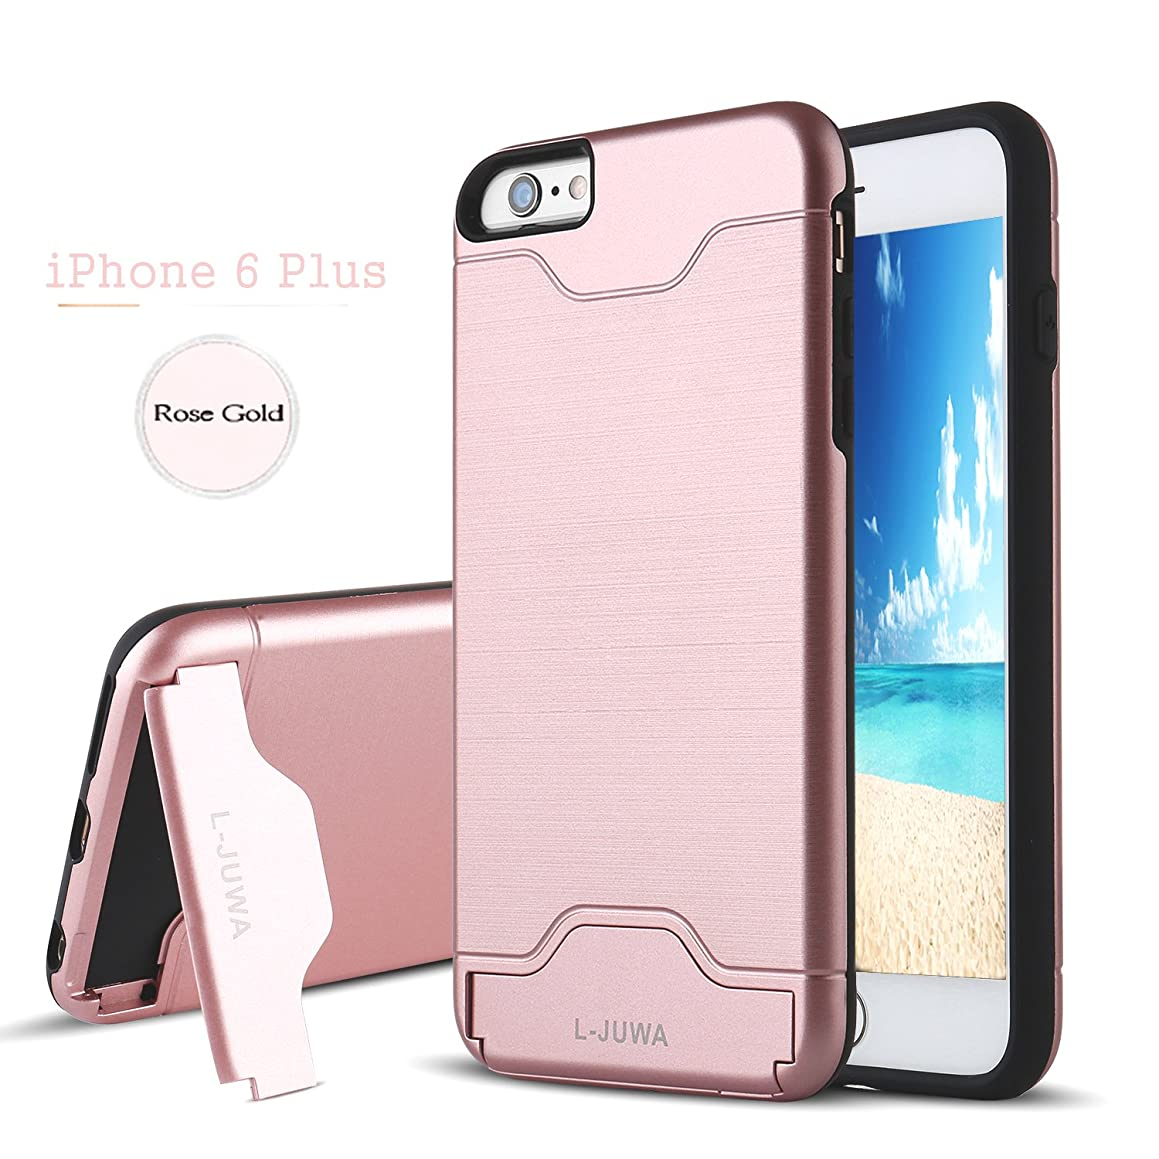 iPhone 6 Plus Case, L-JUWA [Card Slot Holder][KickStand] Shockproof Slim Fit Dual Layer Hybrid Protection Case Cover for Apple iPhone 6 Plus/6S Plus (Rose Gold)